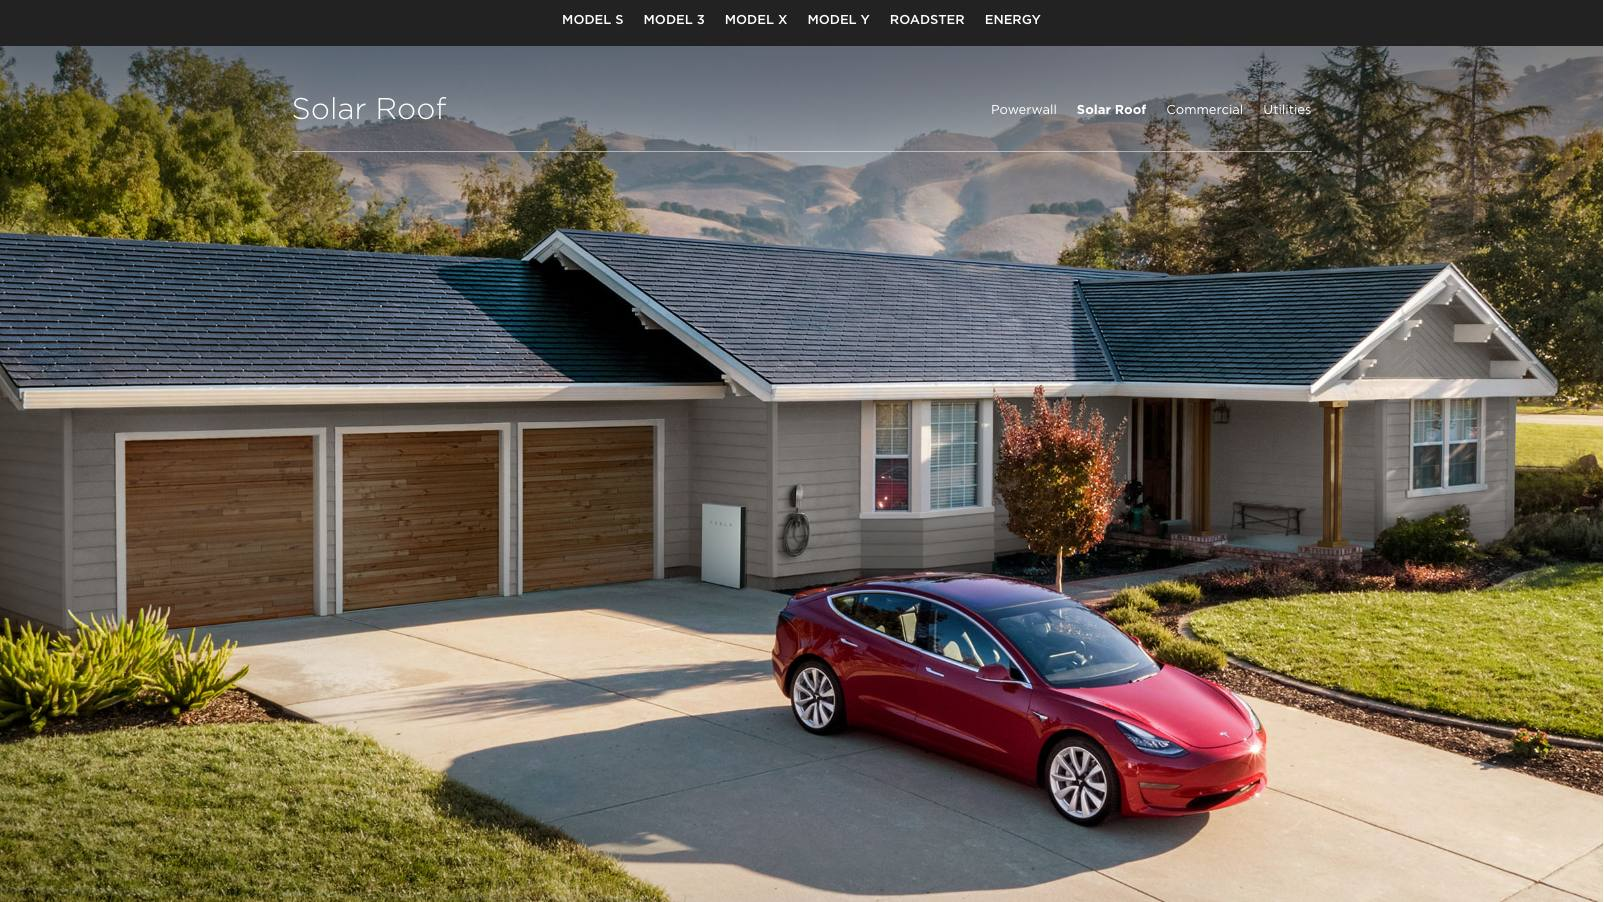 The great Tesla solar roof distraction